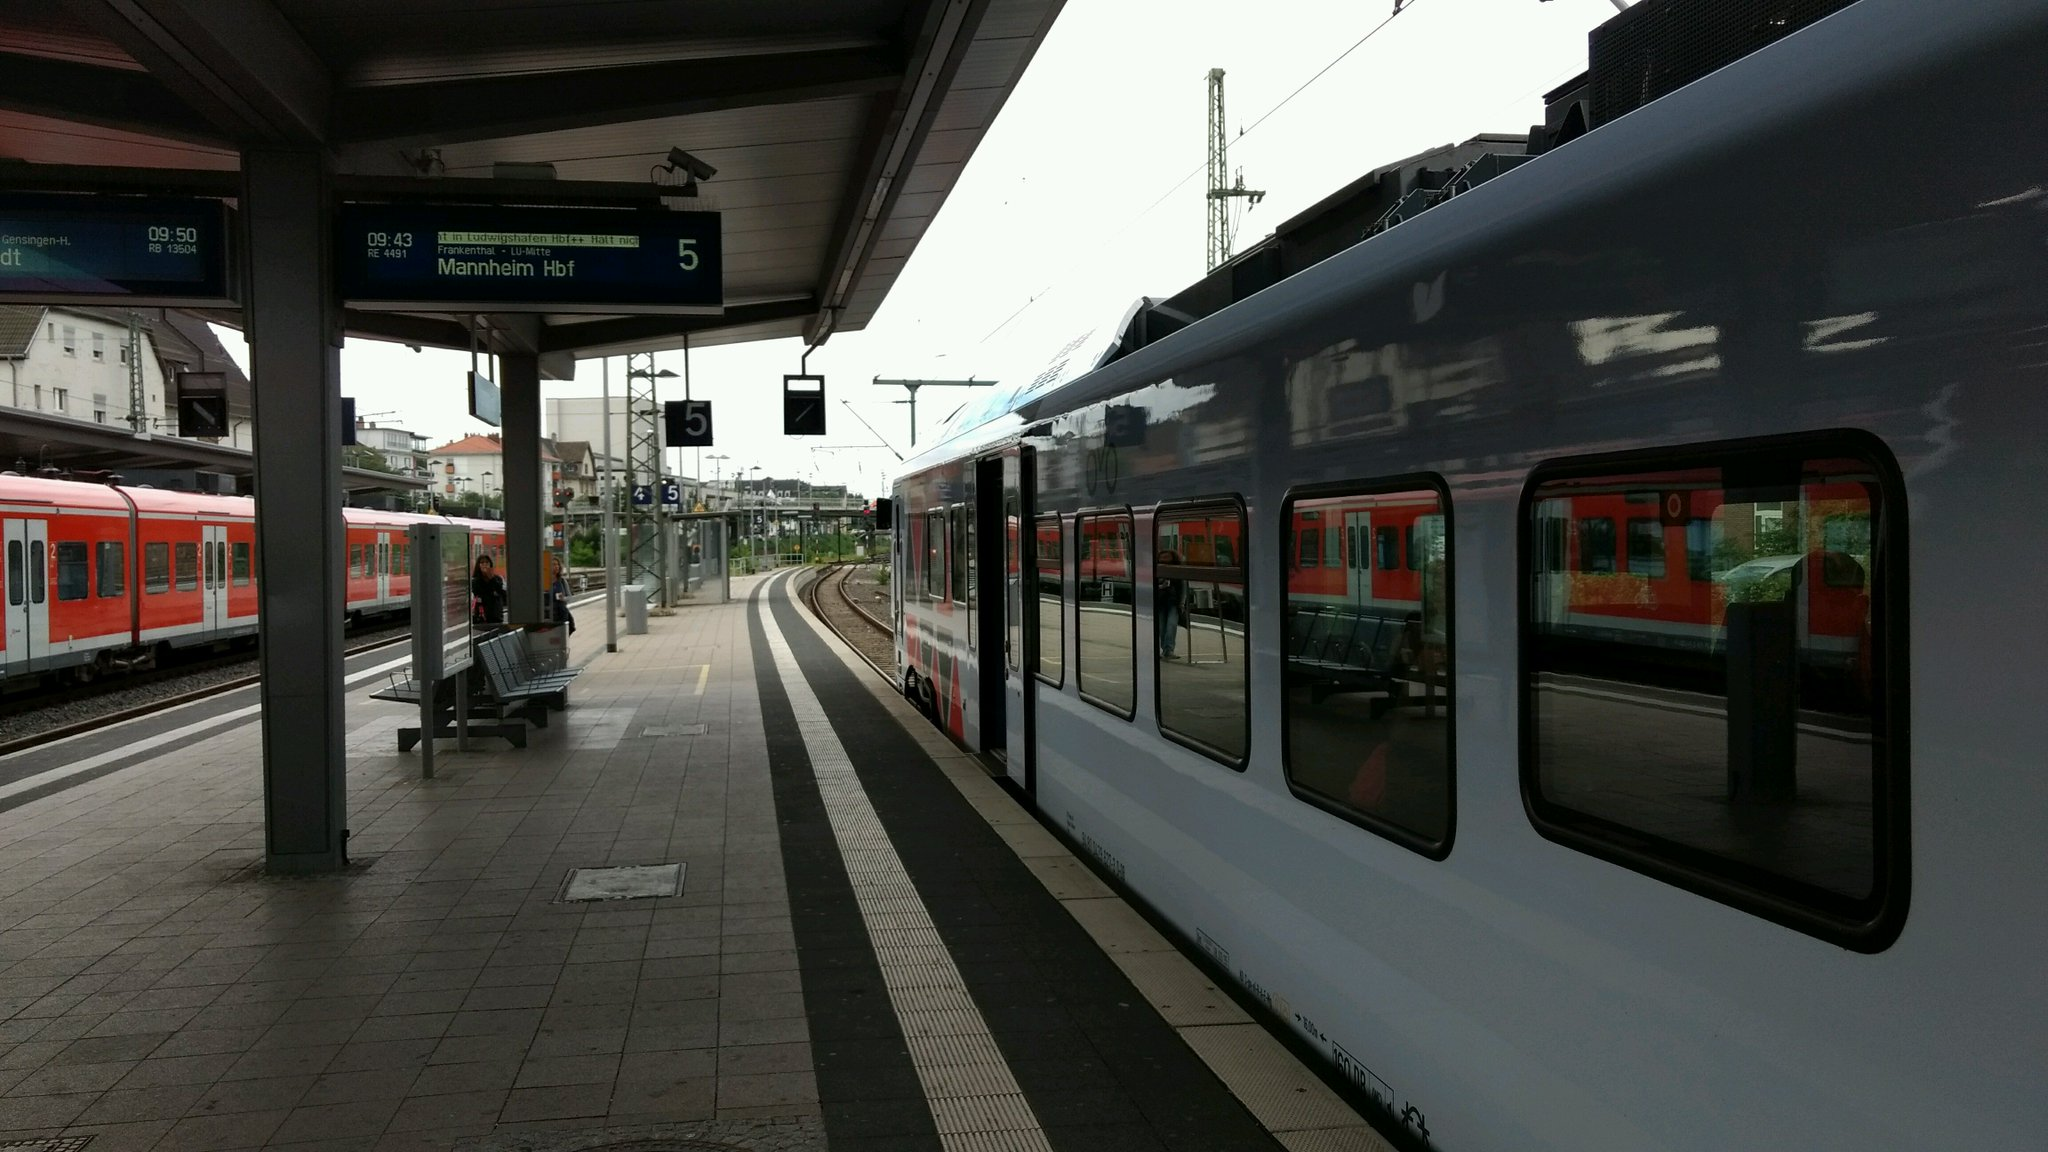 I'm at Worms Hauptbahnhof in Worms, RP https://t.co/OPzfnQx7QJ https://t.co/kRpryfXMbq